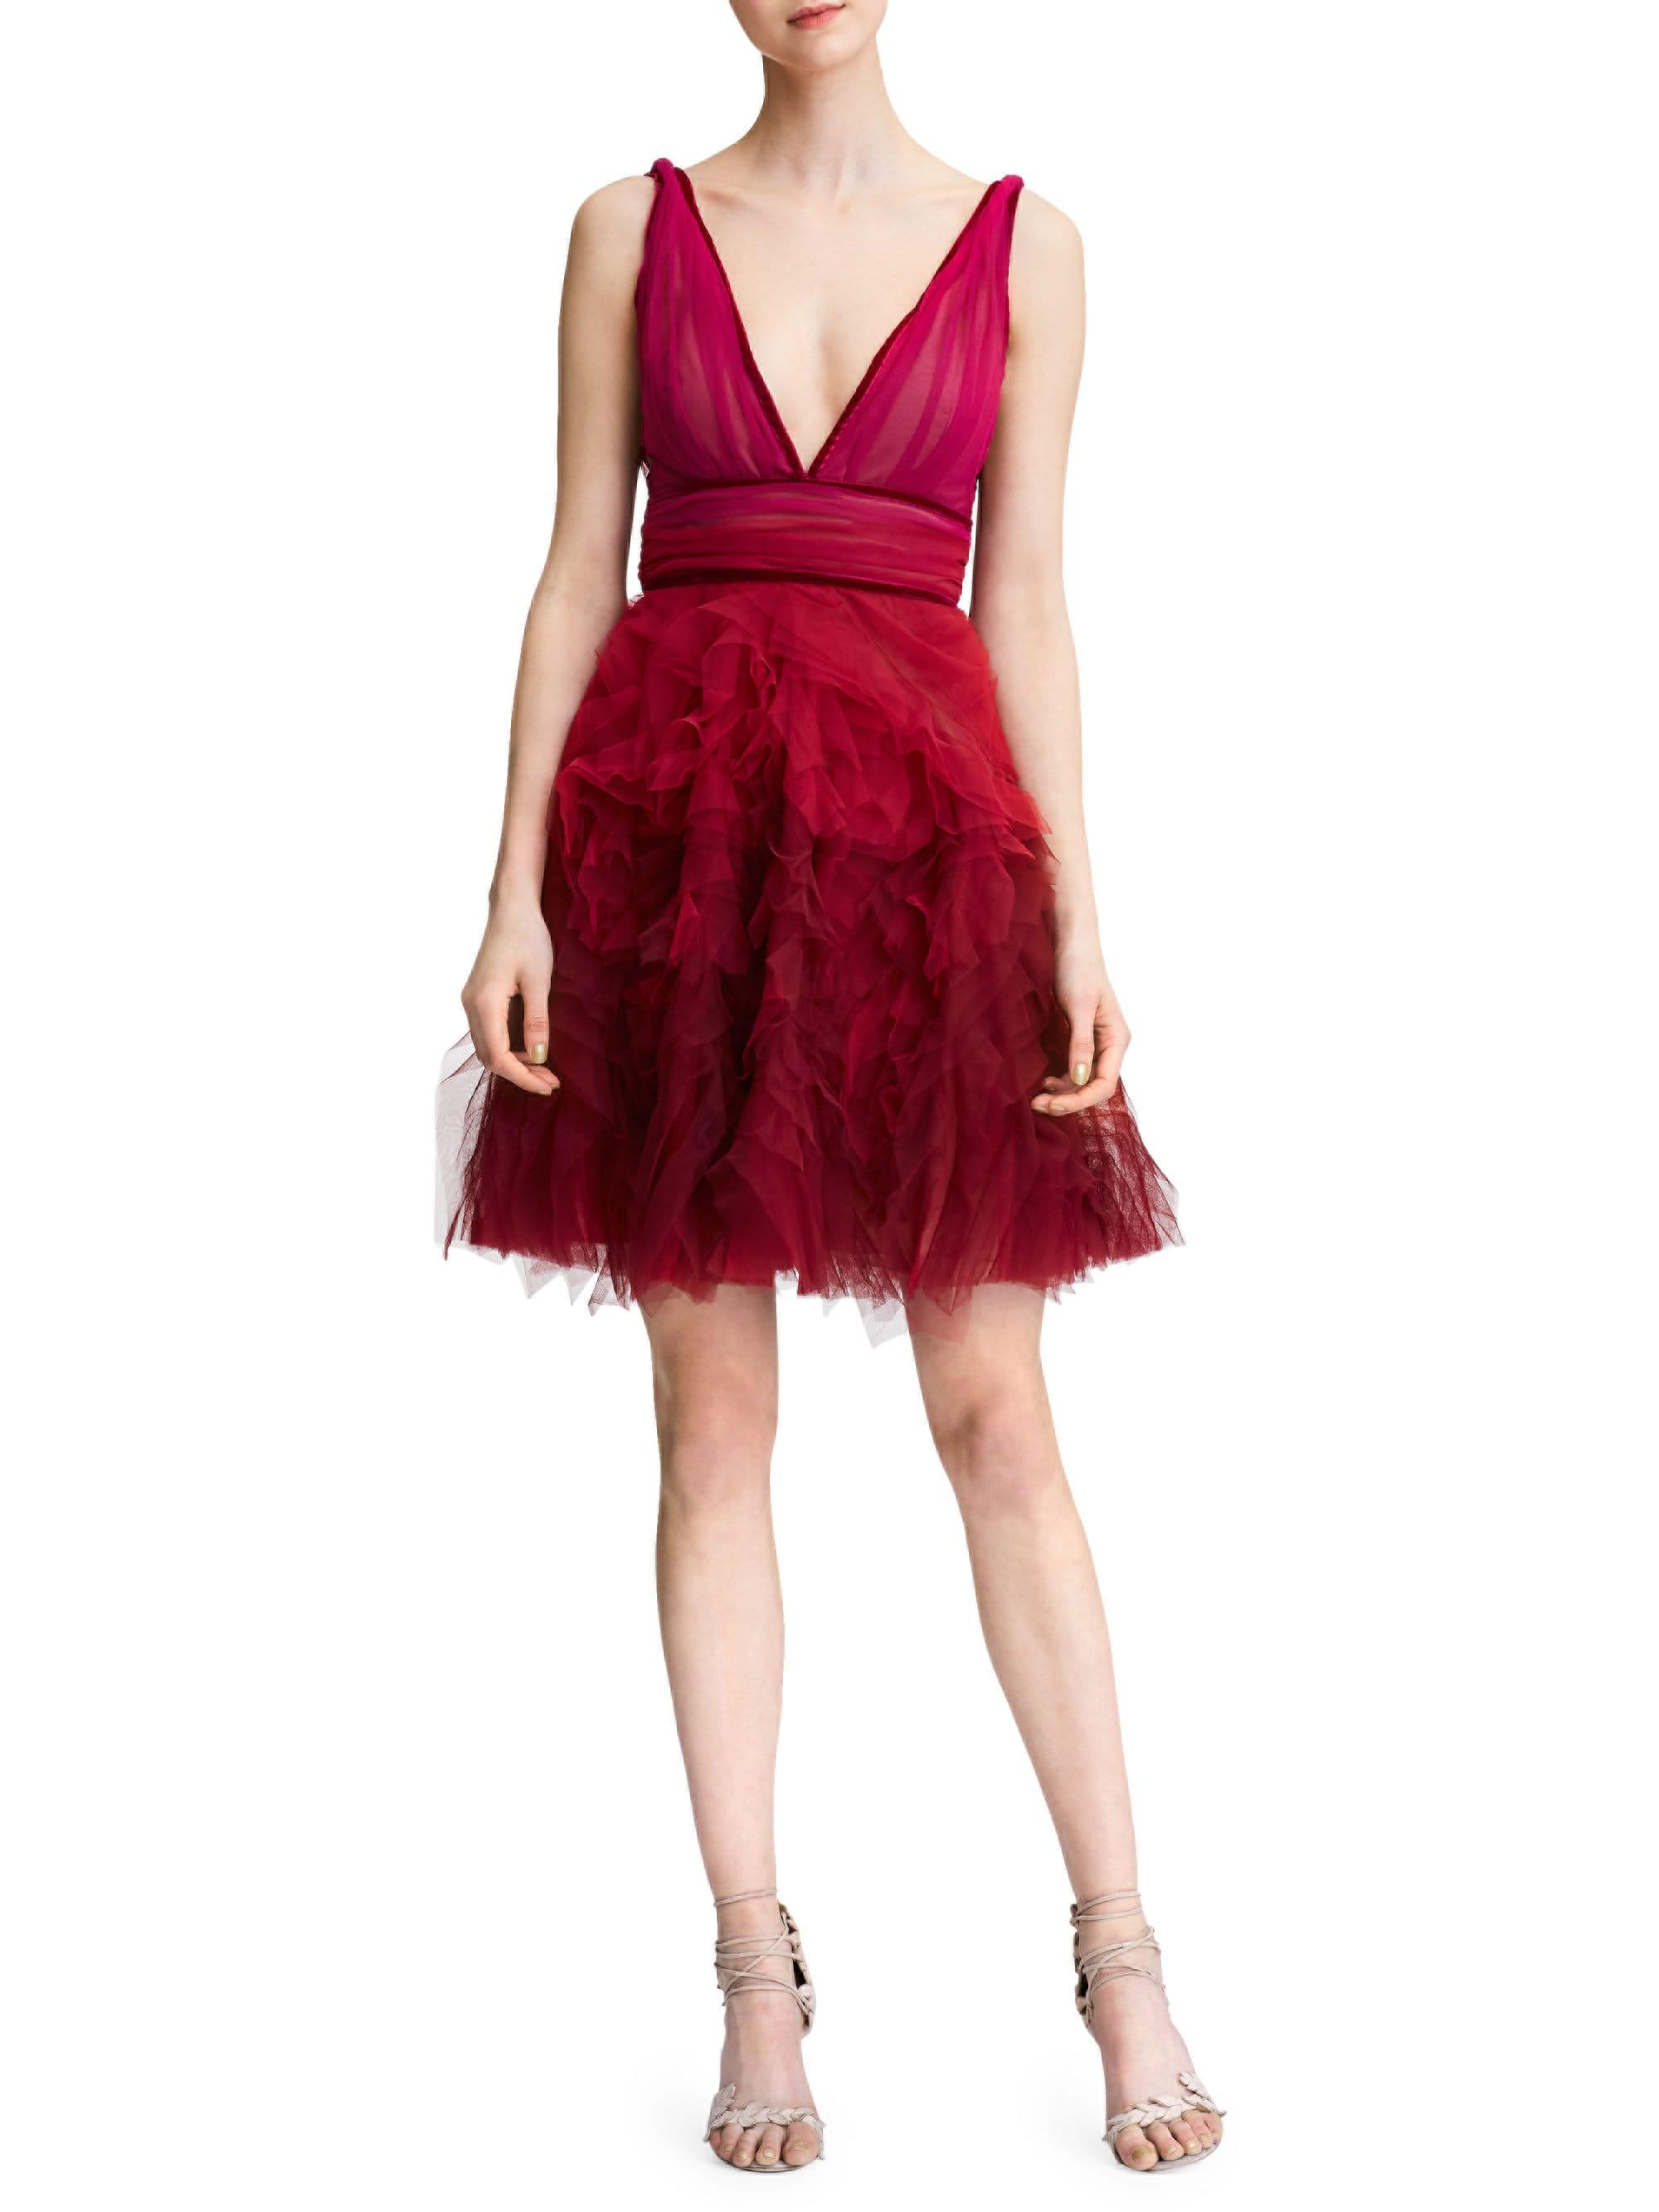 a99bf98ade Marchesa notte Fit-&-flare Tulle Cocktail Dress in Red - Lyst